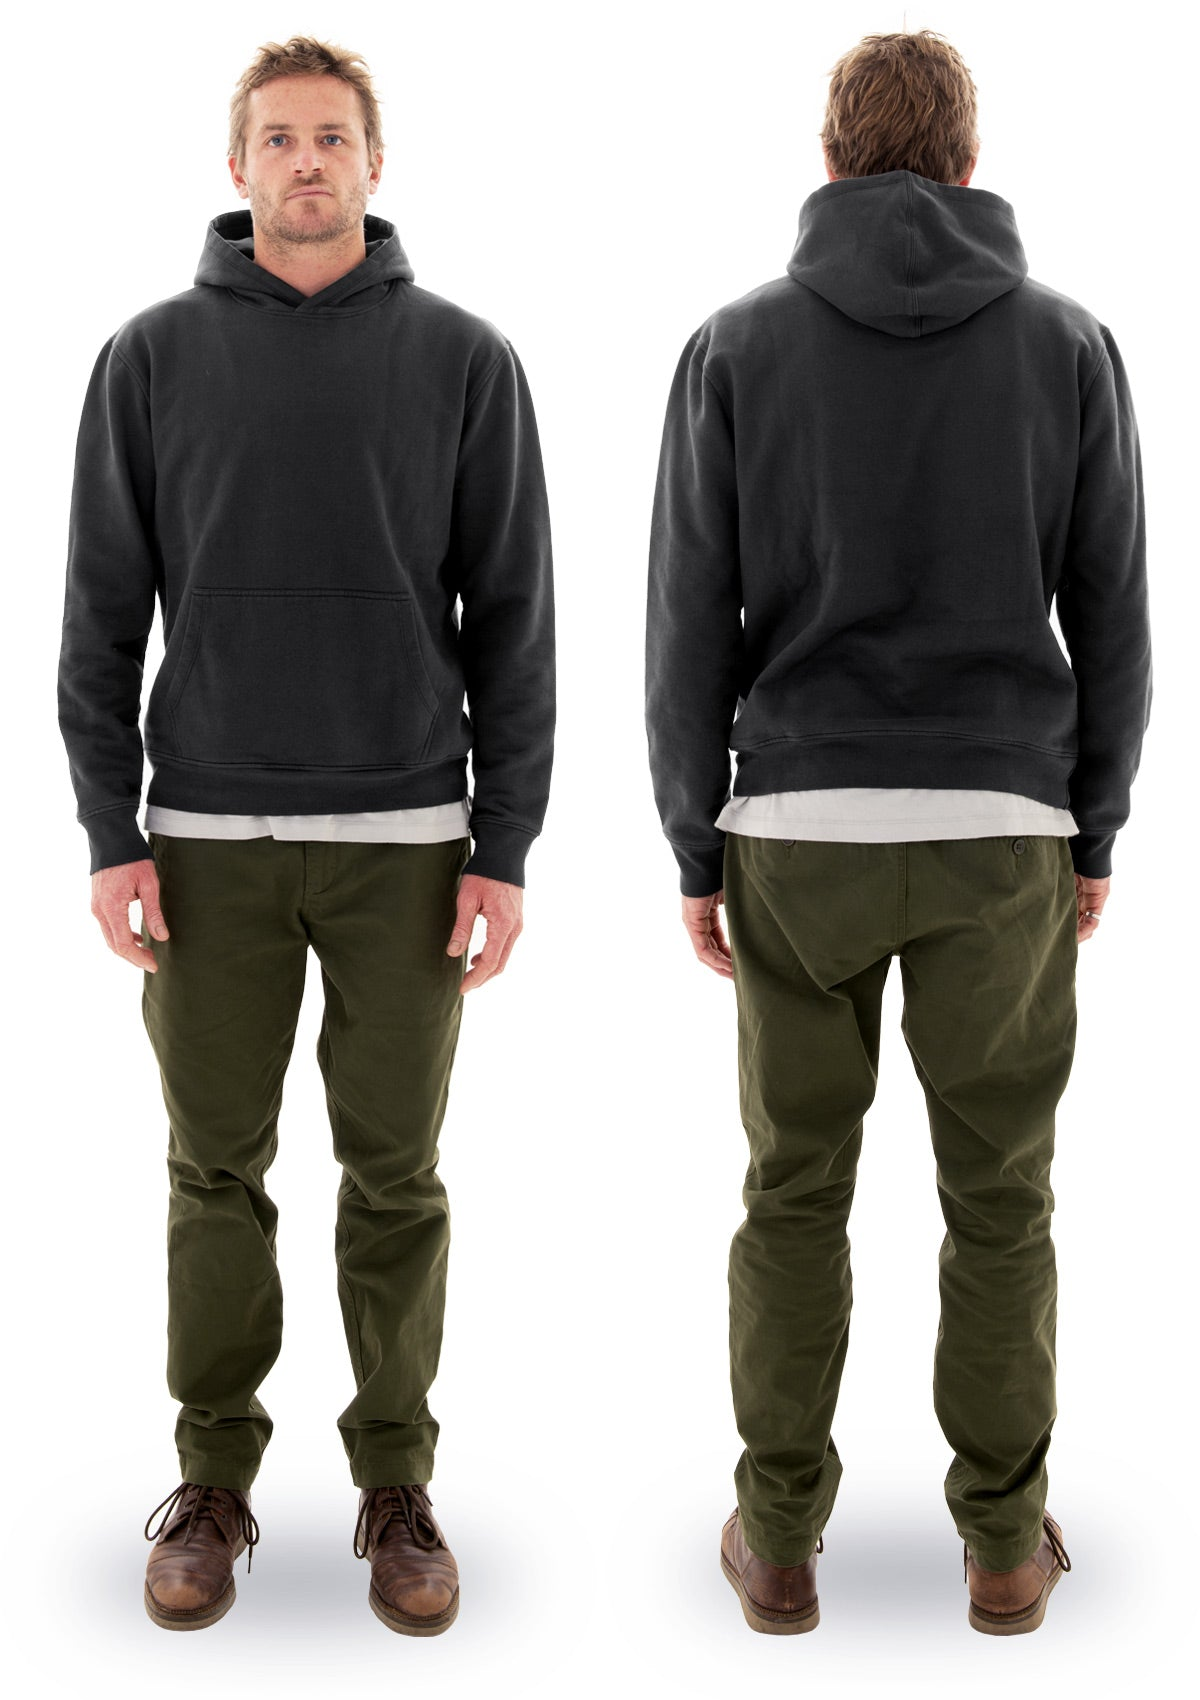 needessentials organic cotton hoodie jumper black laurie towner